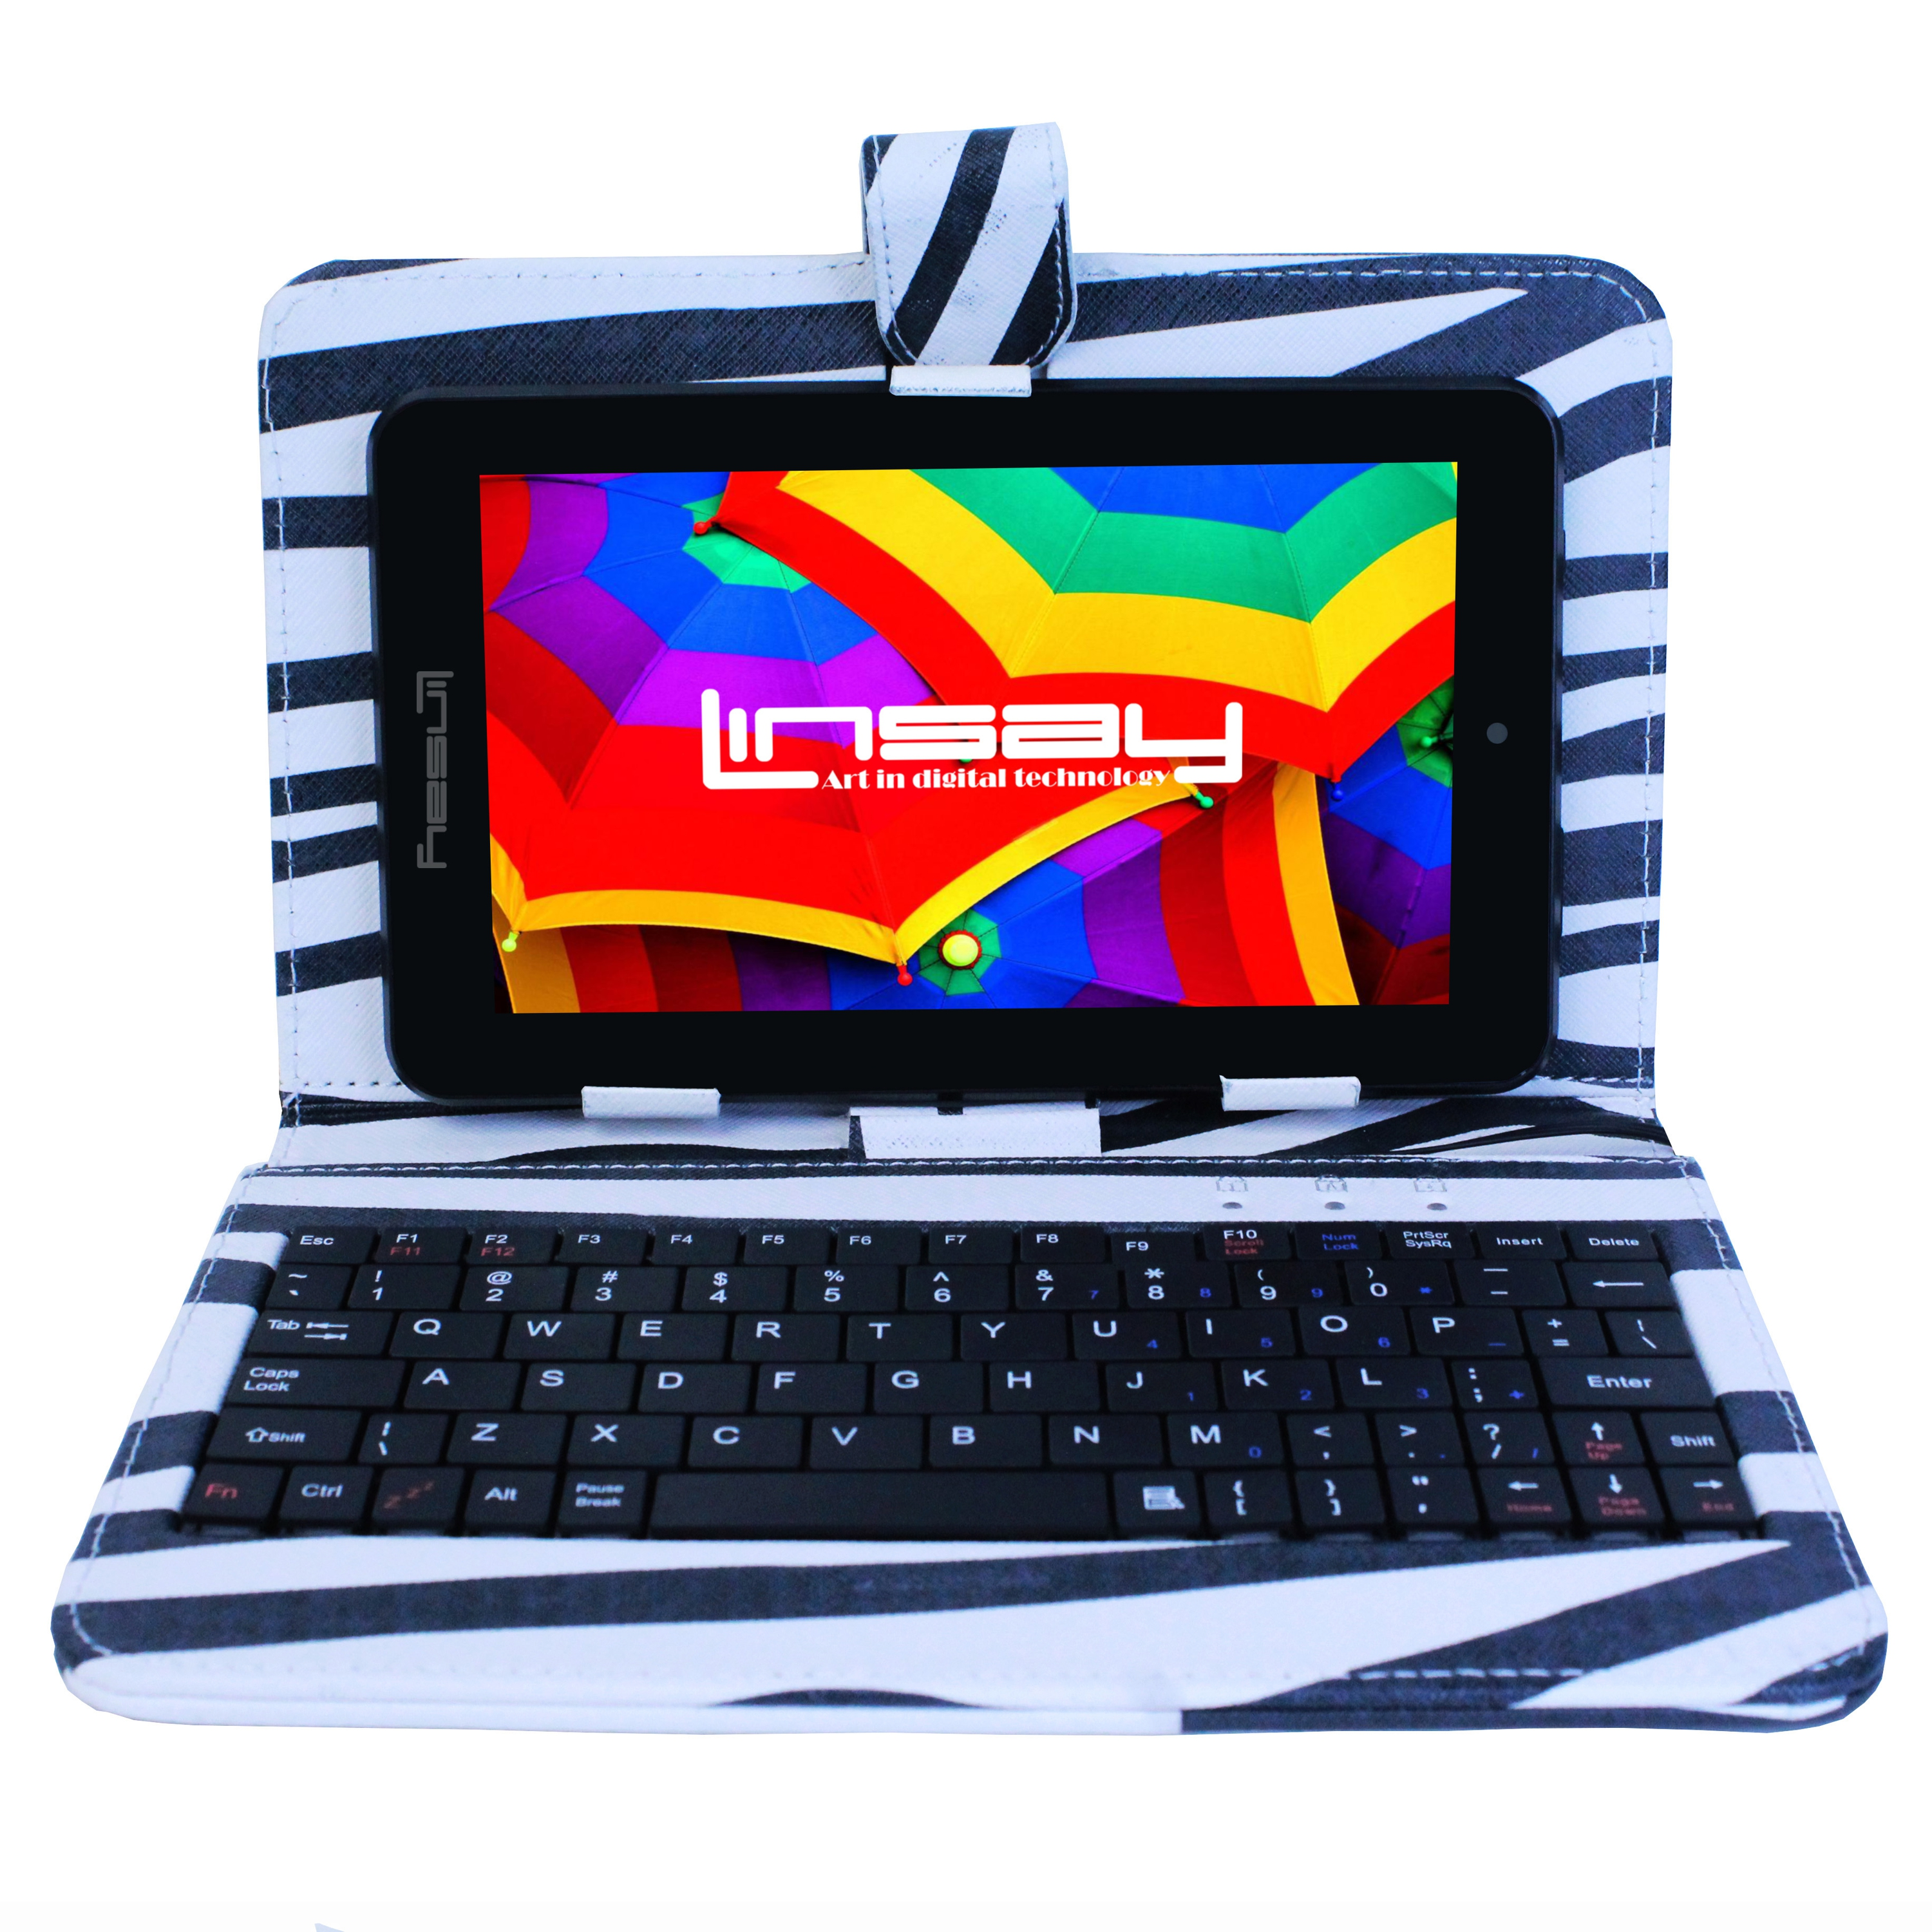 """LINSAY 7"""" HD Quad Core Tablet with Zebra Style Keyboard Case Android 9.0 PIE 2GB Ram 16GB Storage"""